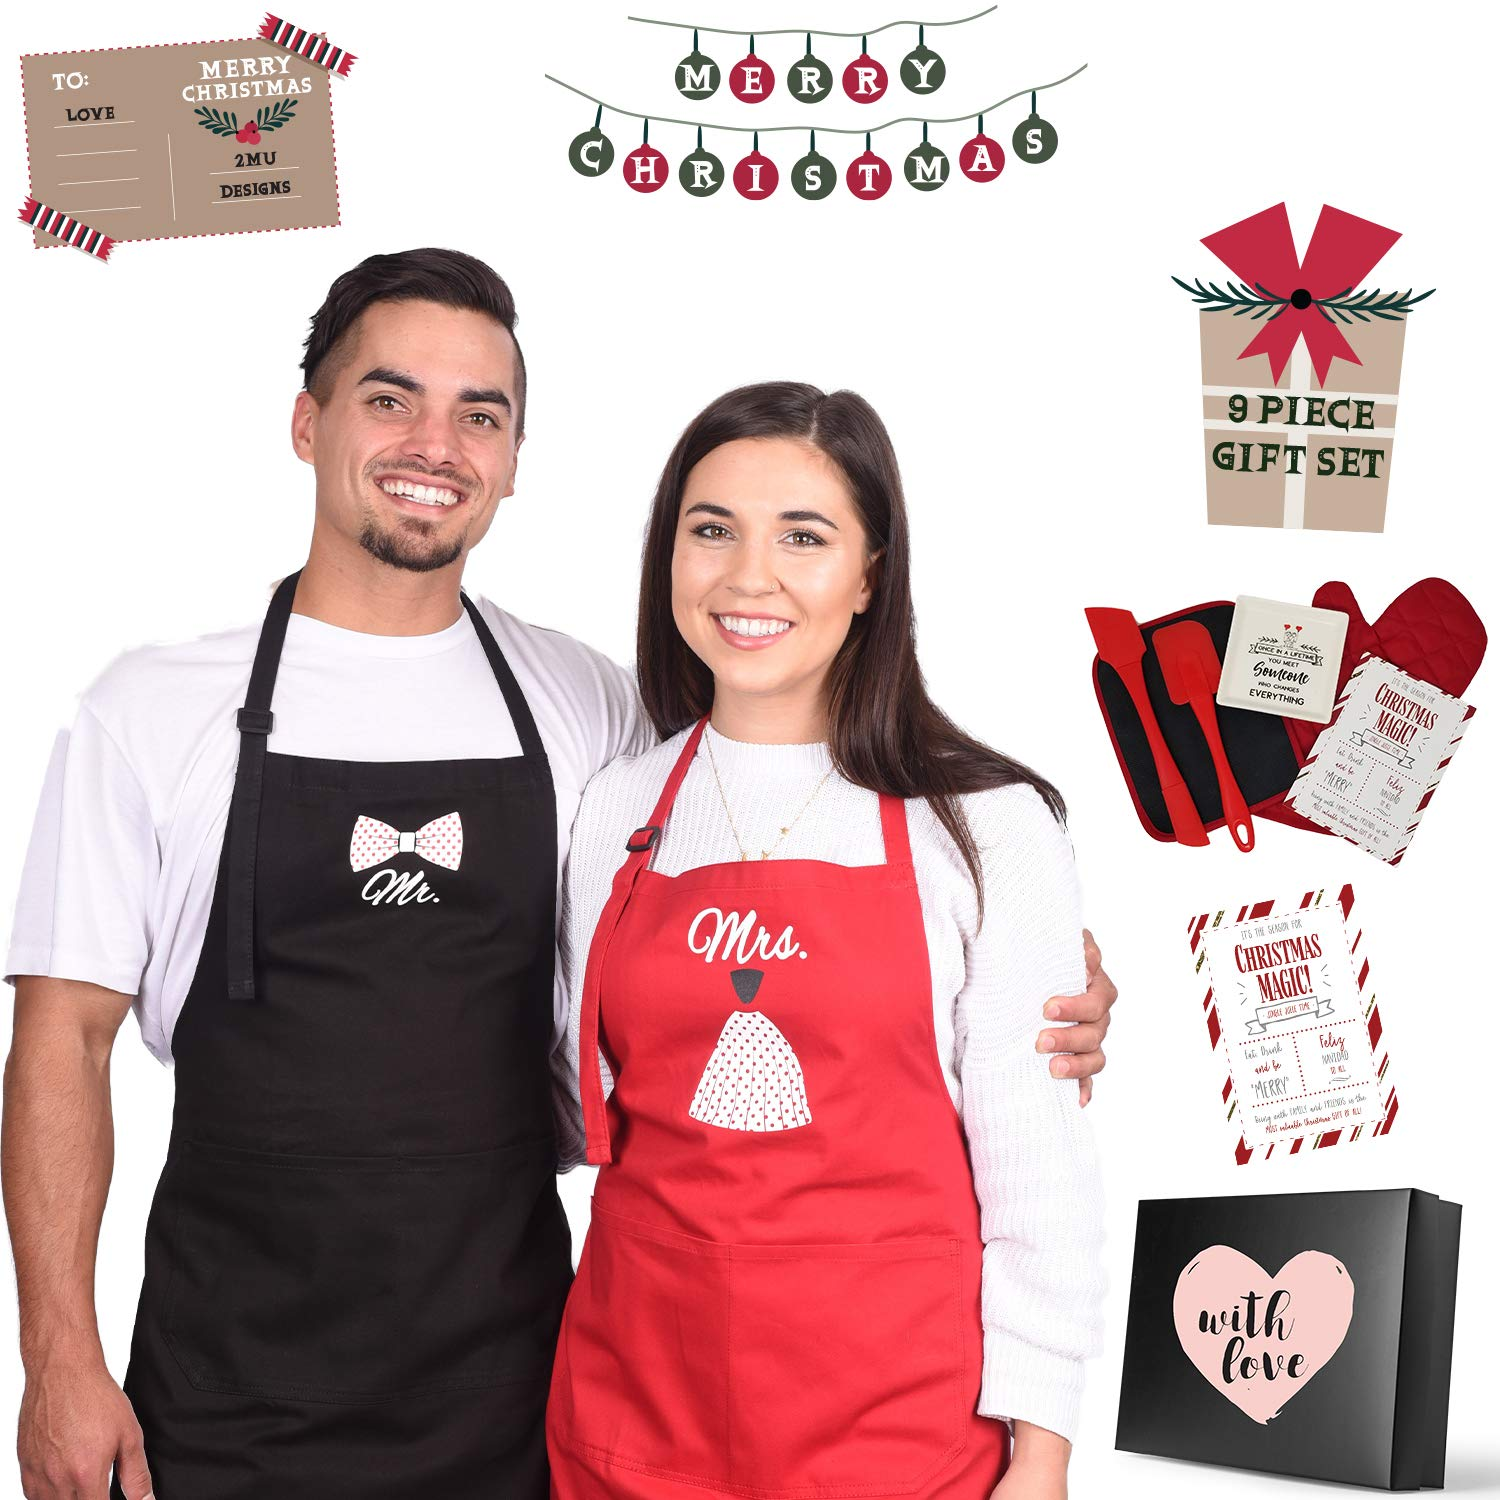 2MU Mr Mrs Funny Wedding Gifts for The Couple | Best Apron Set | Bridal Shower Gift Ideas Ideas | His and Hers | 9 Piece Set | Free Oven Mitt, Potholder, Ring Dish, and Spatulas